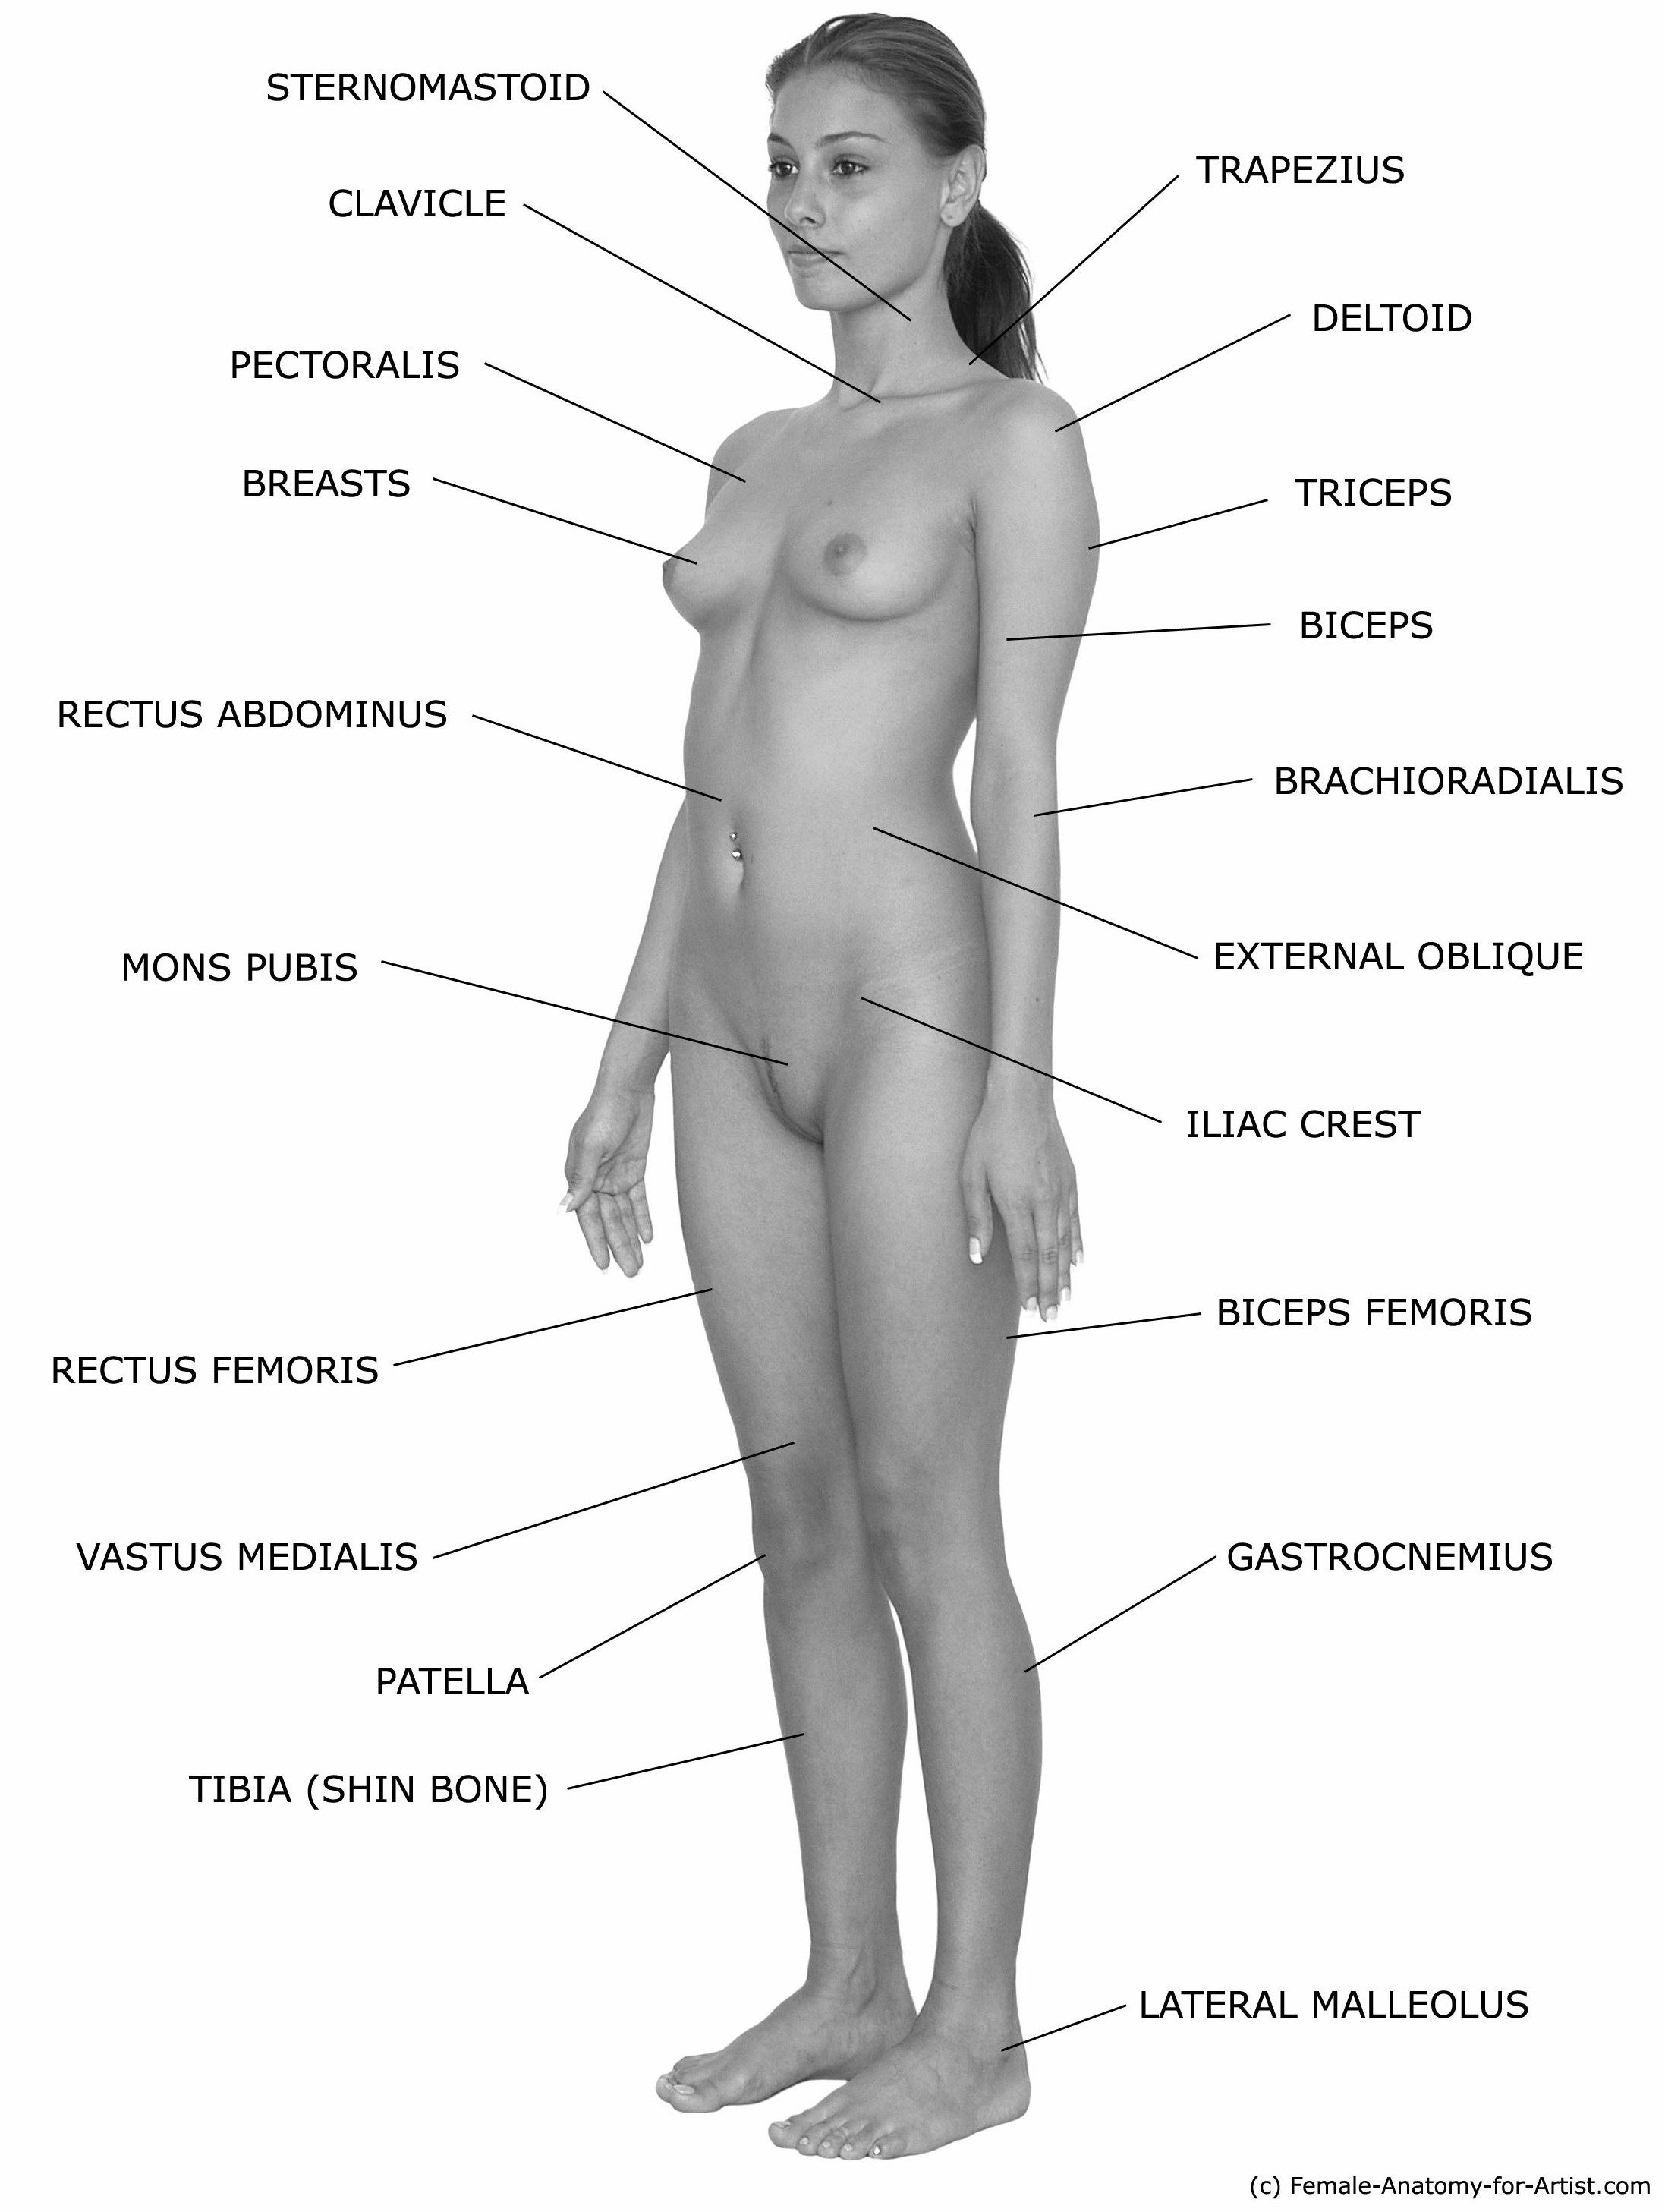 Female Anatomy Reference I Lingerue Anatomy Anatomy Reference